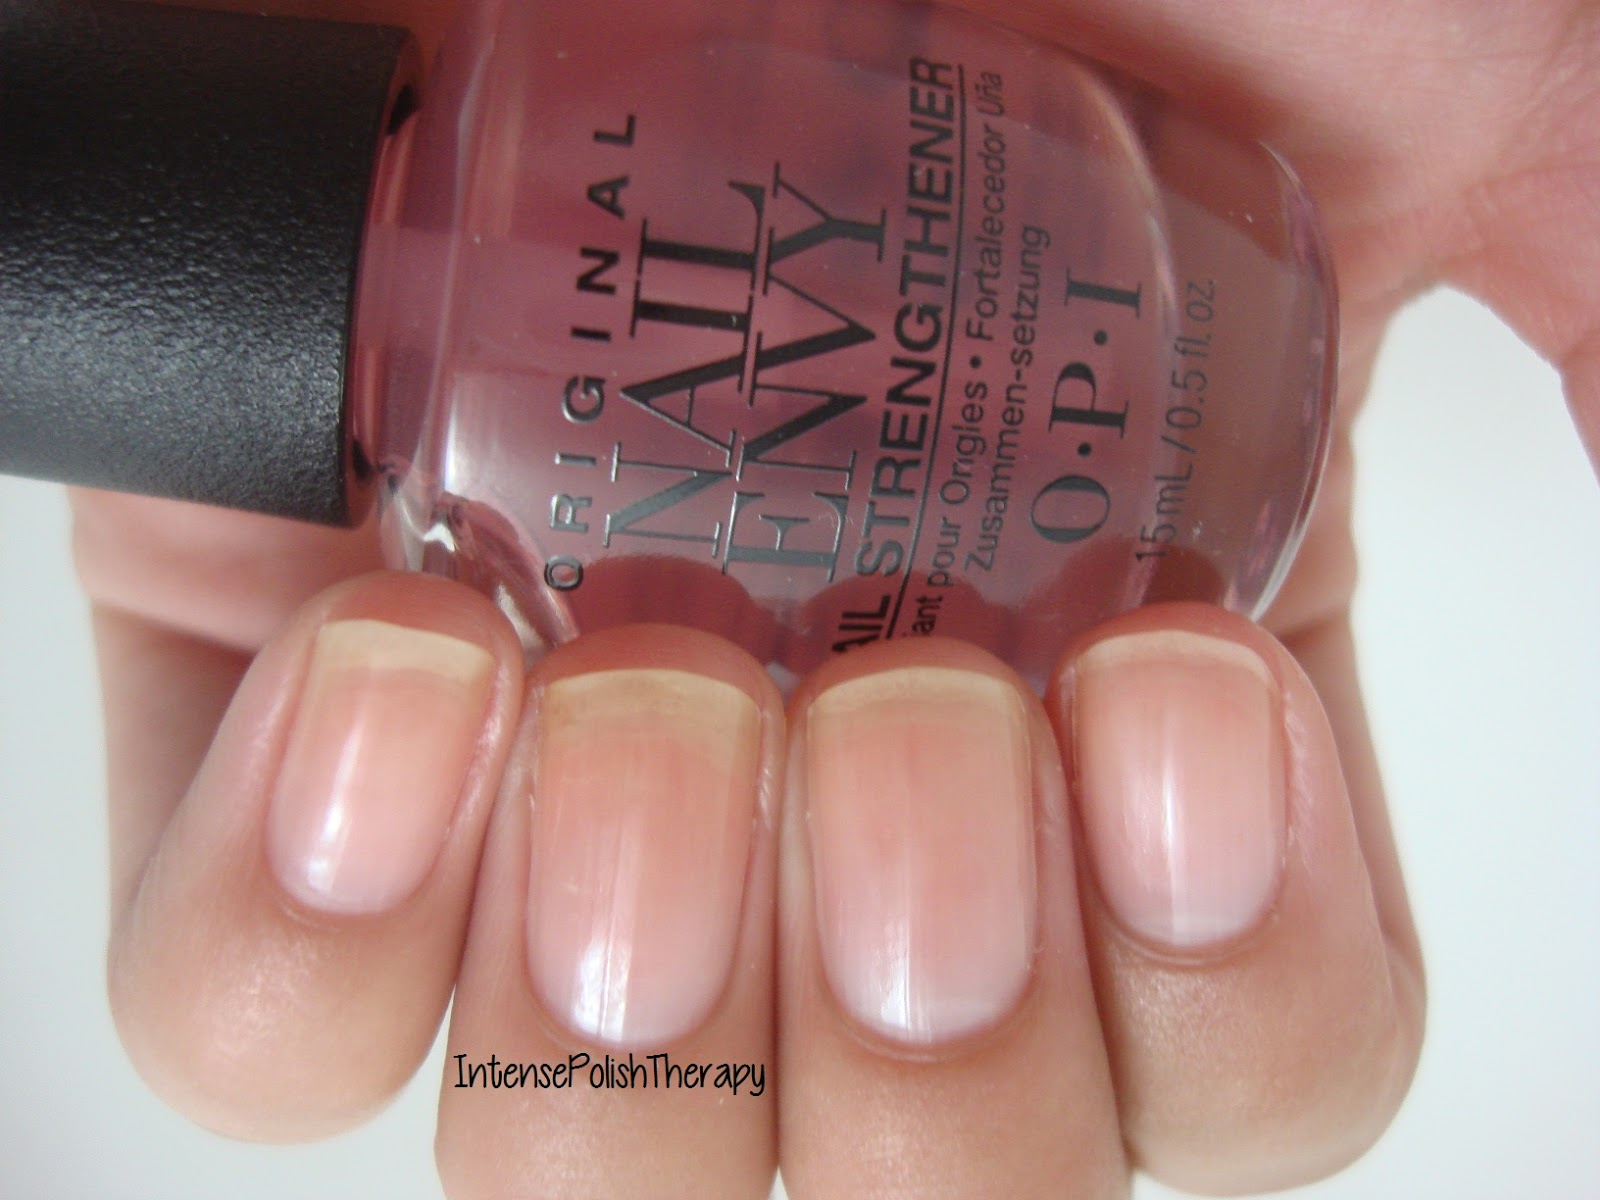 OPI Nail Envy Strength + Color #Pink to Envy | Beauticool.com